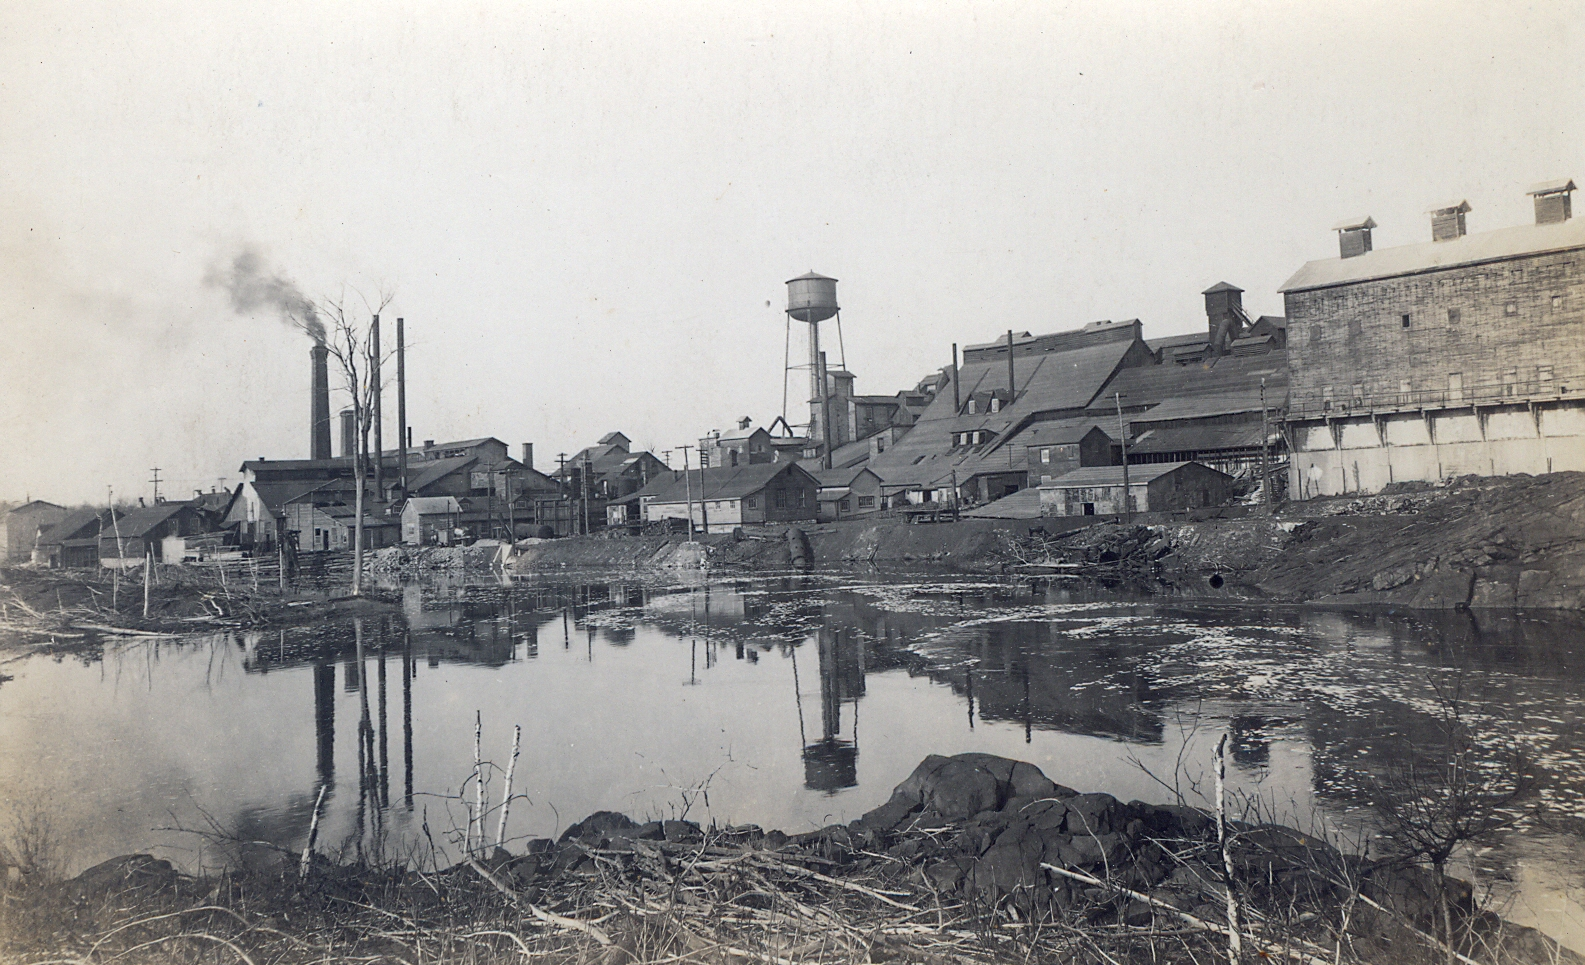 1916 Deloro Mine Site from the east bank of river. Note 1882 arsenic works centre still in use. Arsenic bag house on right; Cobalt oxides plant on left